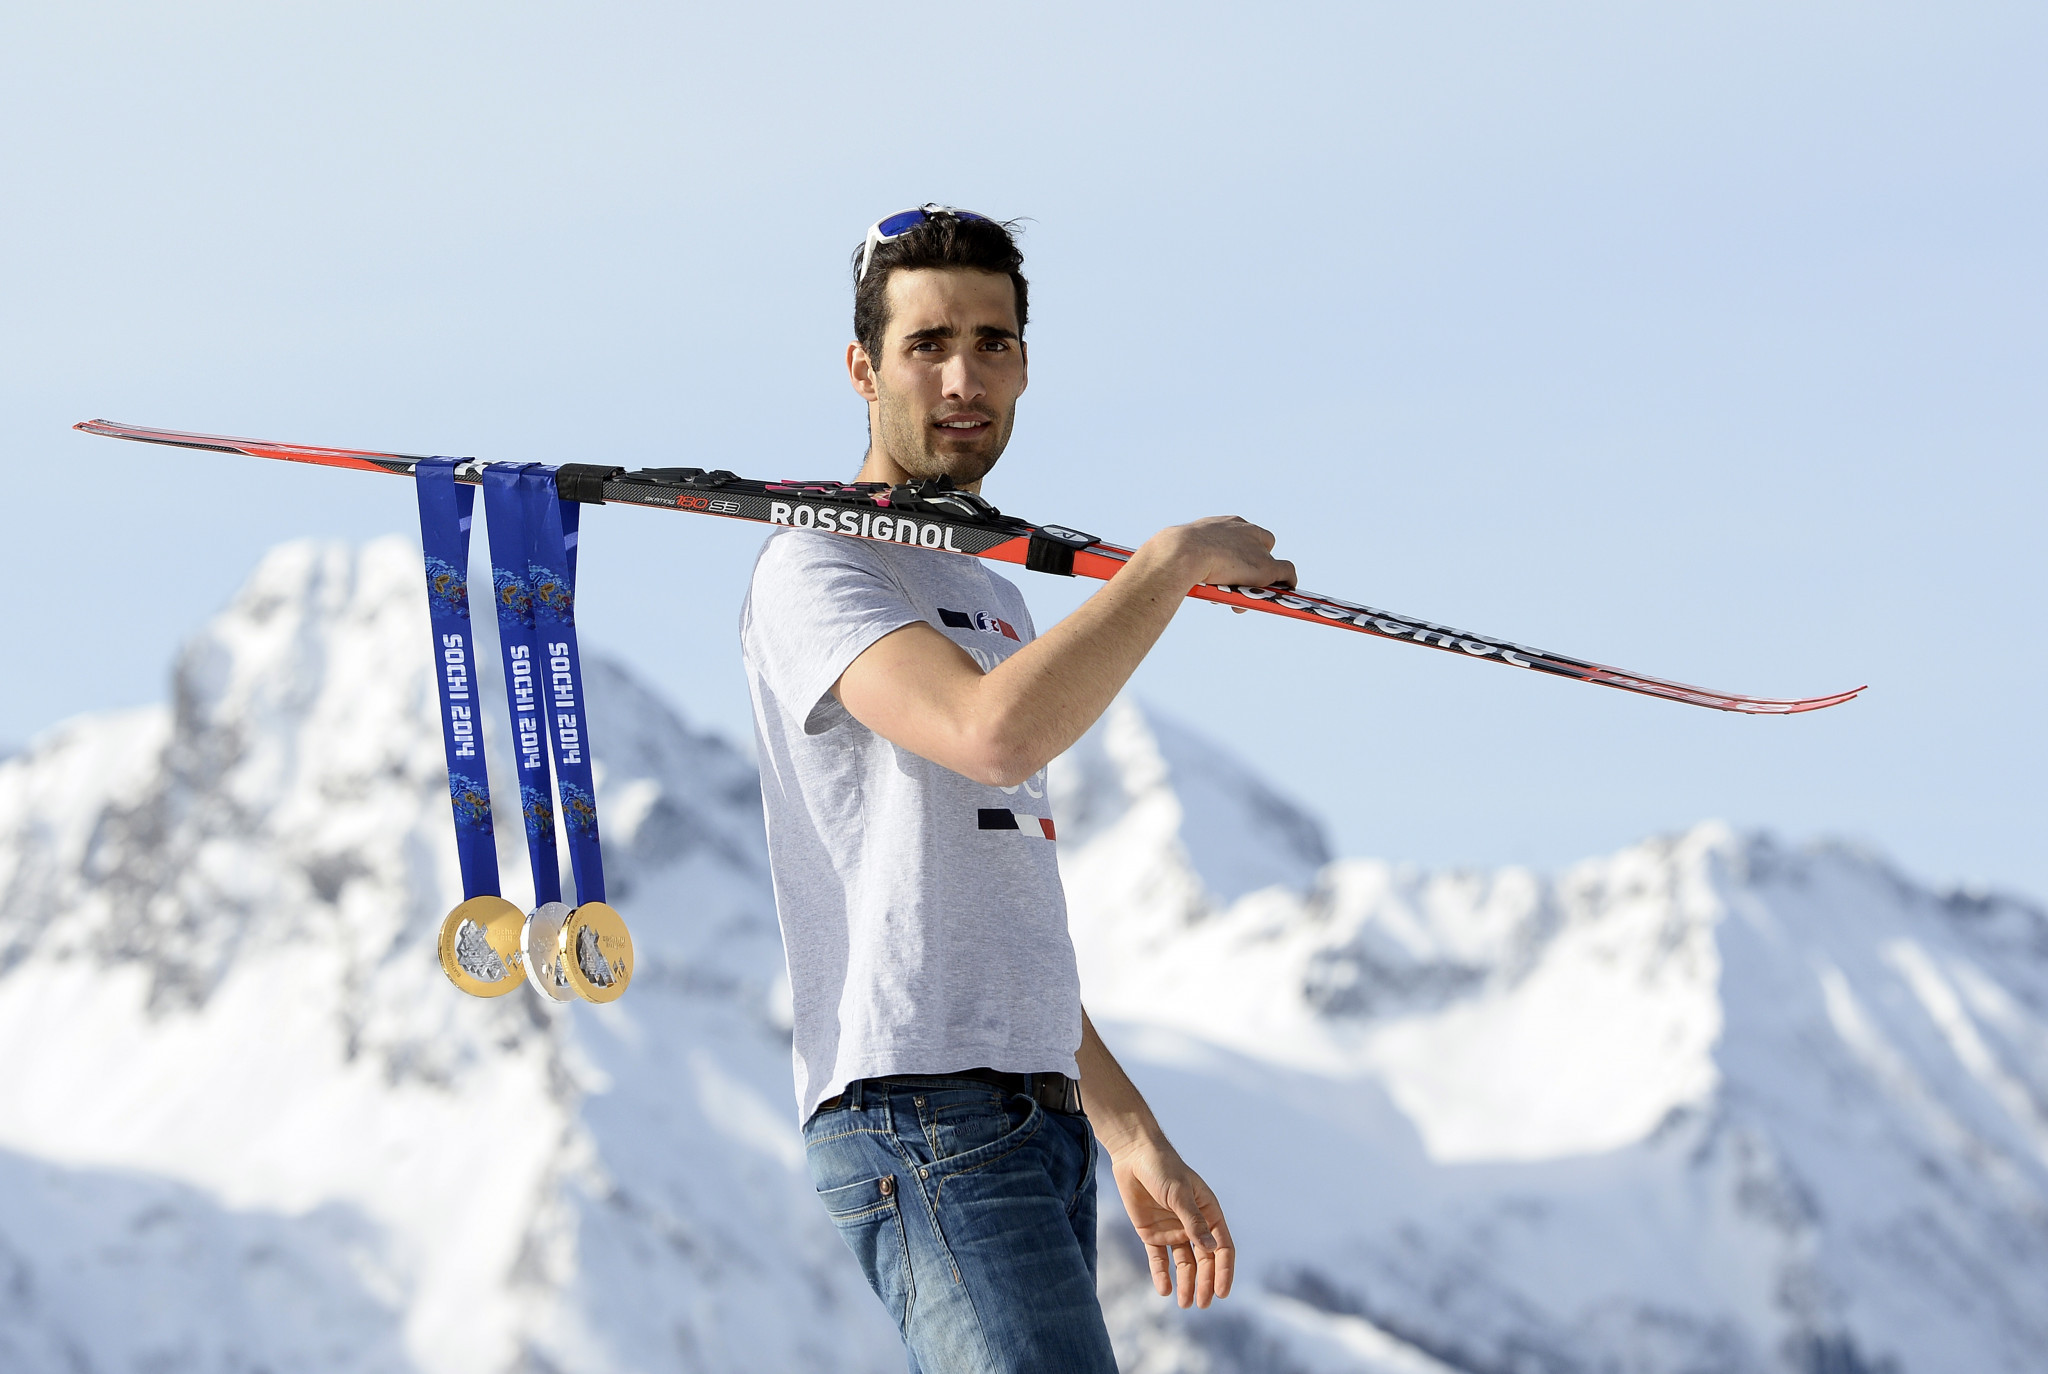 Martin Fourcade won three medals at Sochi 2014, including two golds ©Getty Images